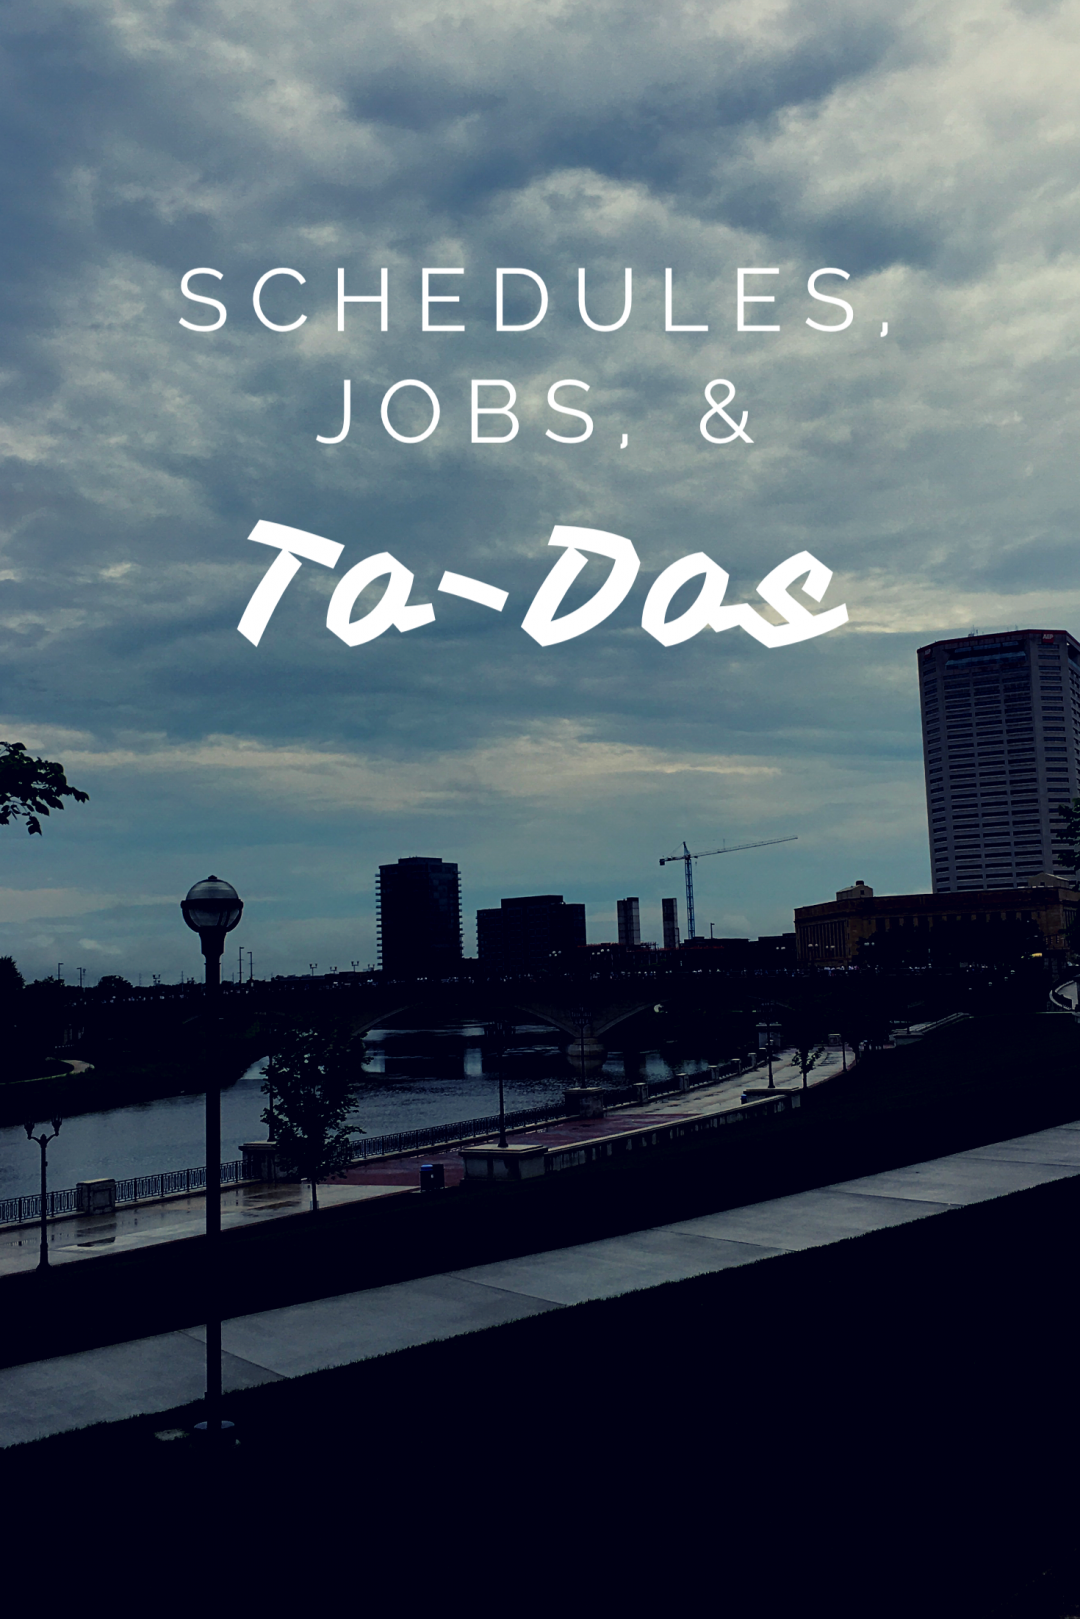 schedules, jobs, to-dos